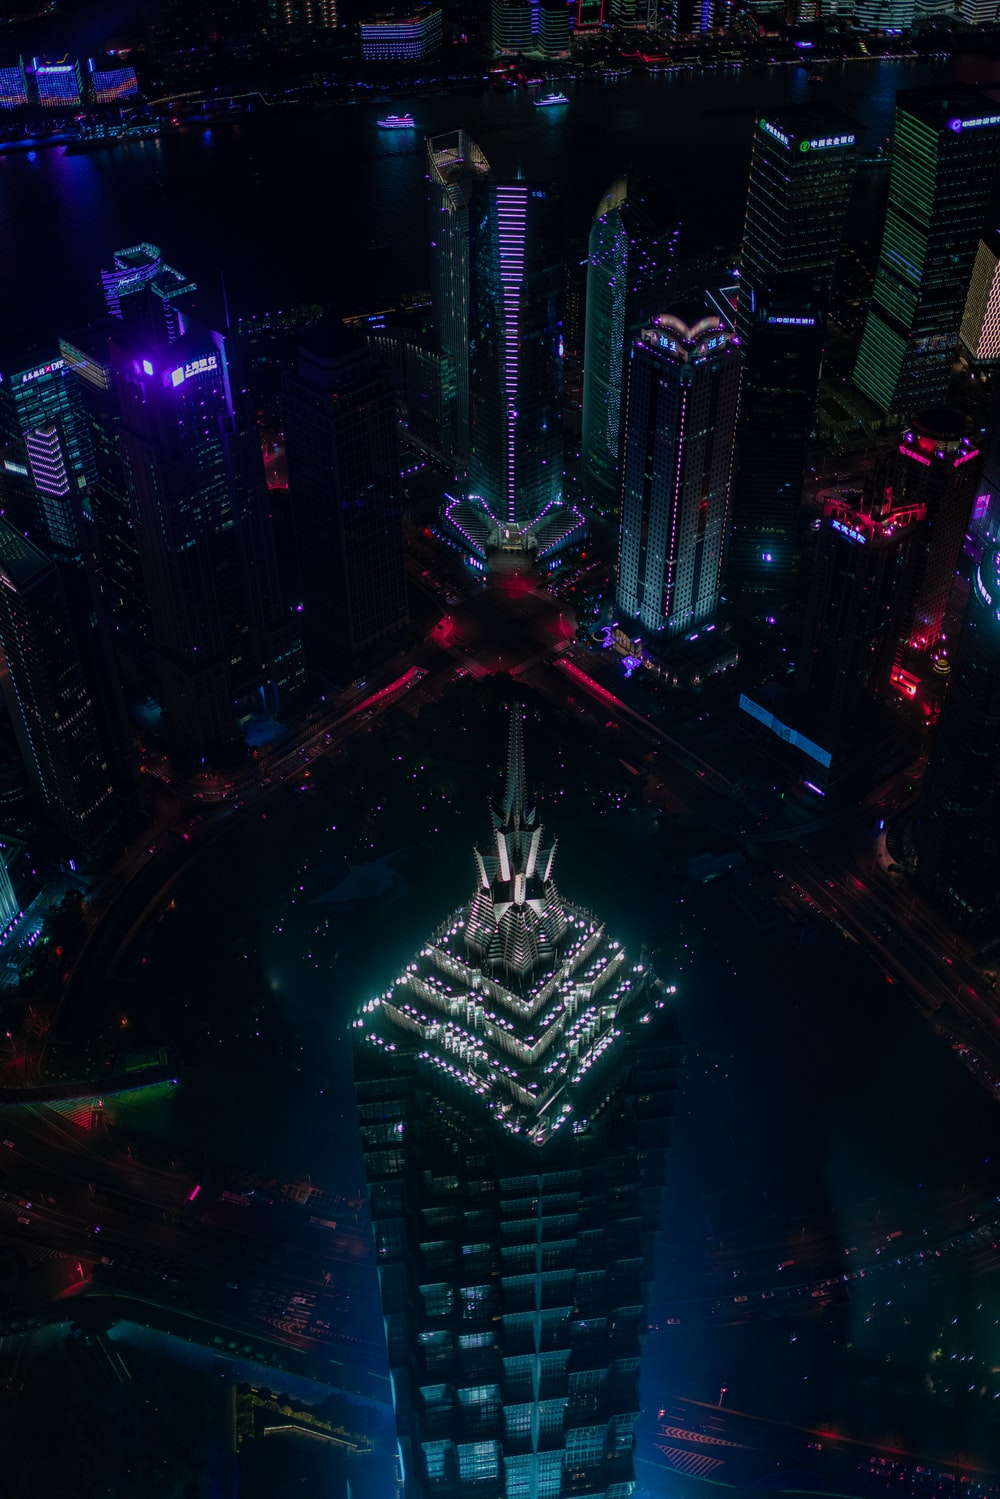 aerial city building scenery during nighttime